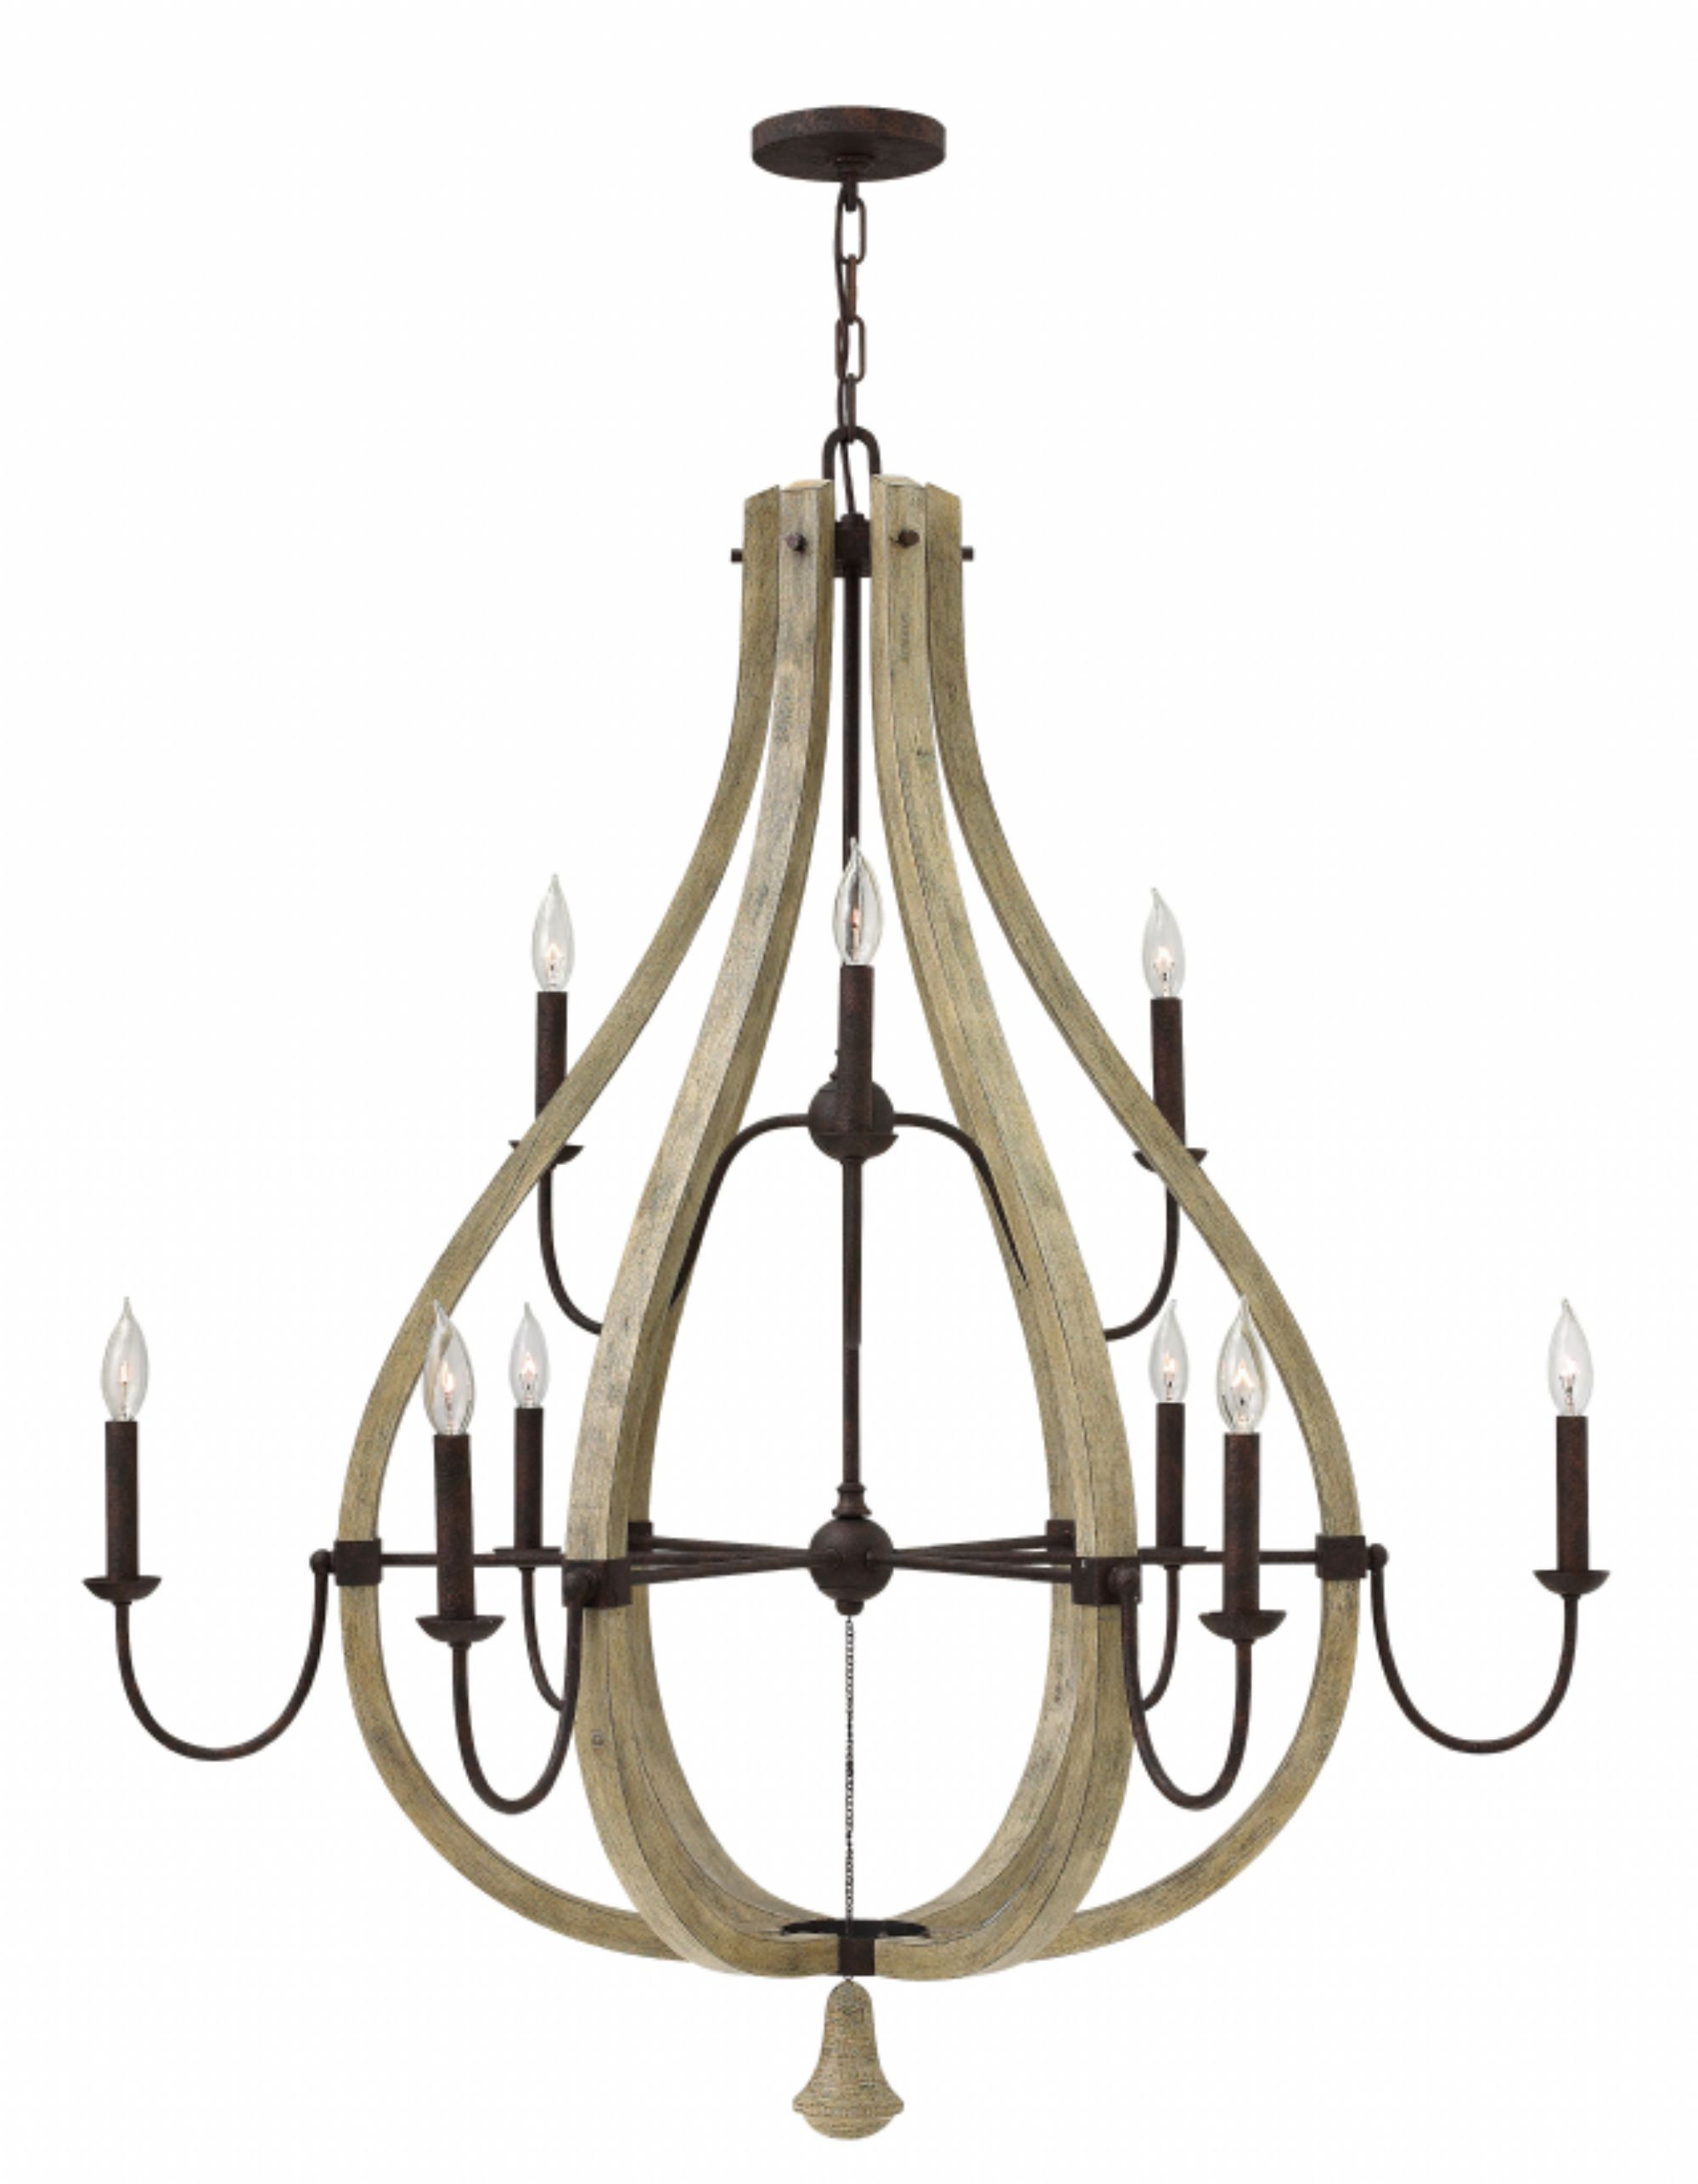 Hinkley Lighting carries many Iron Rust Middlefield Chandeliers